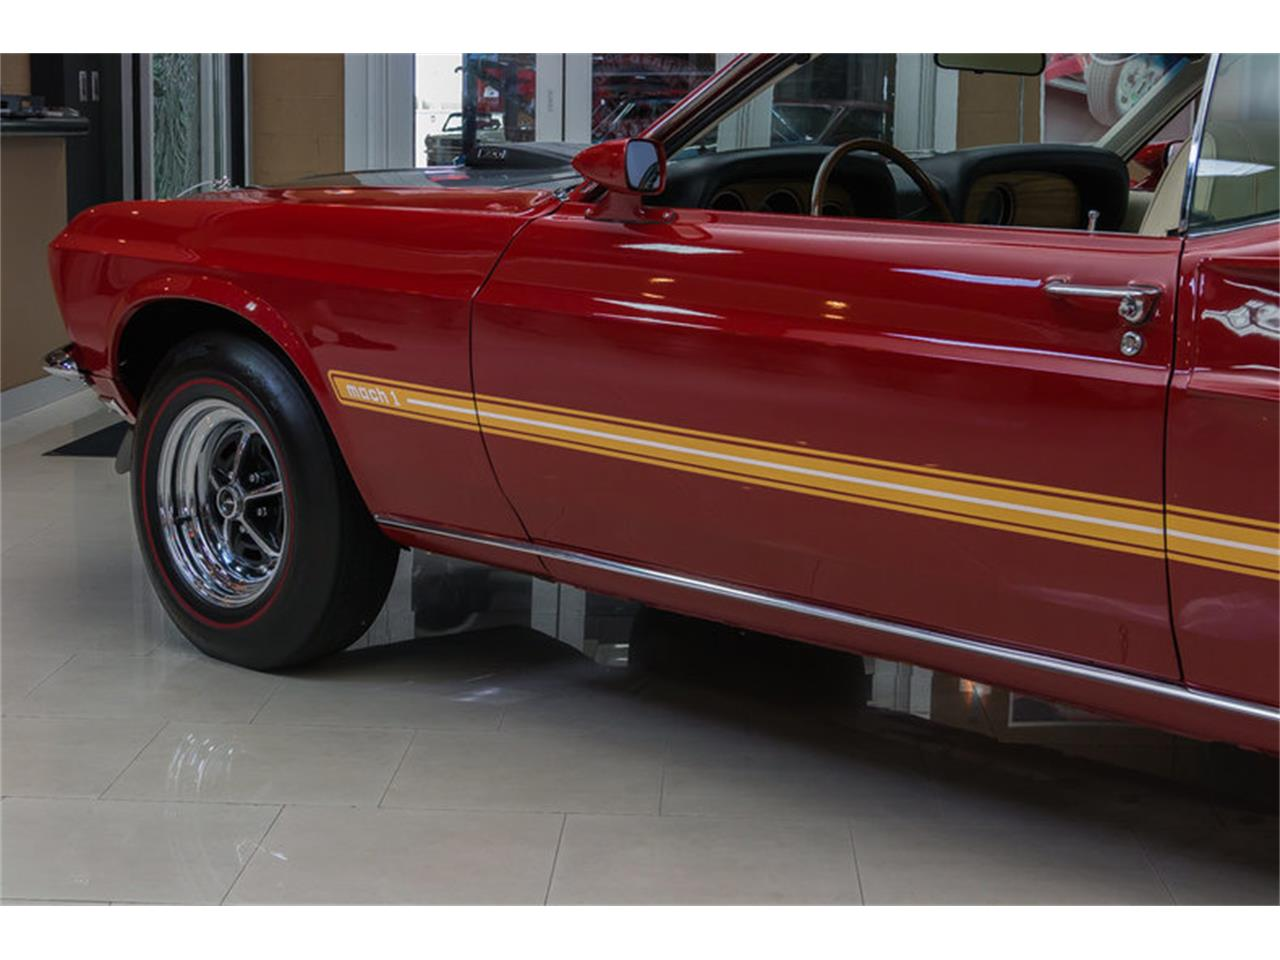 Large Picture of Classic '69 Ford Mustang Mach 1 S Code - IS3G